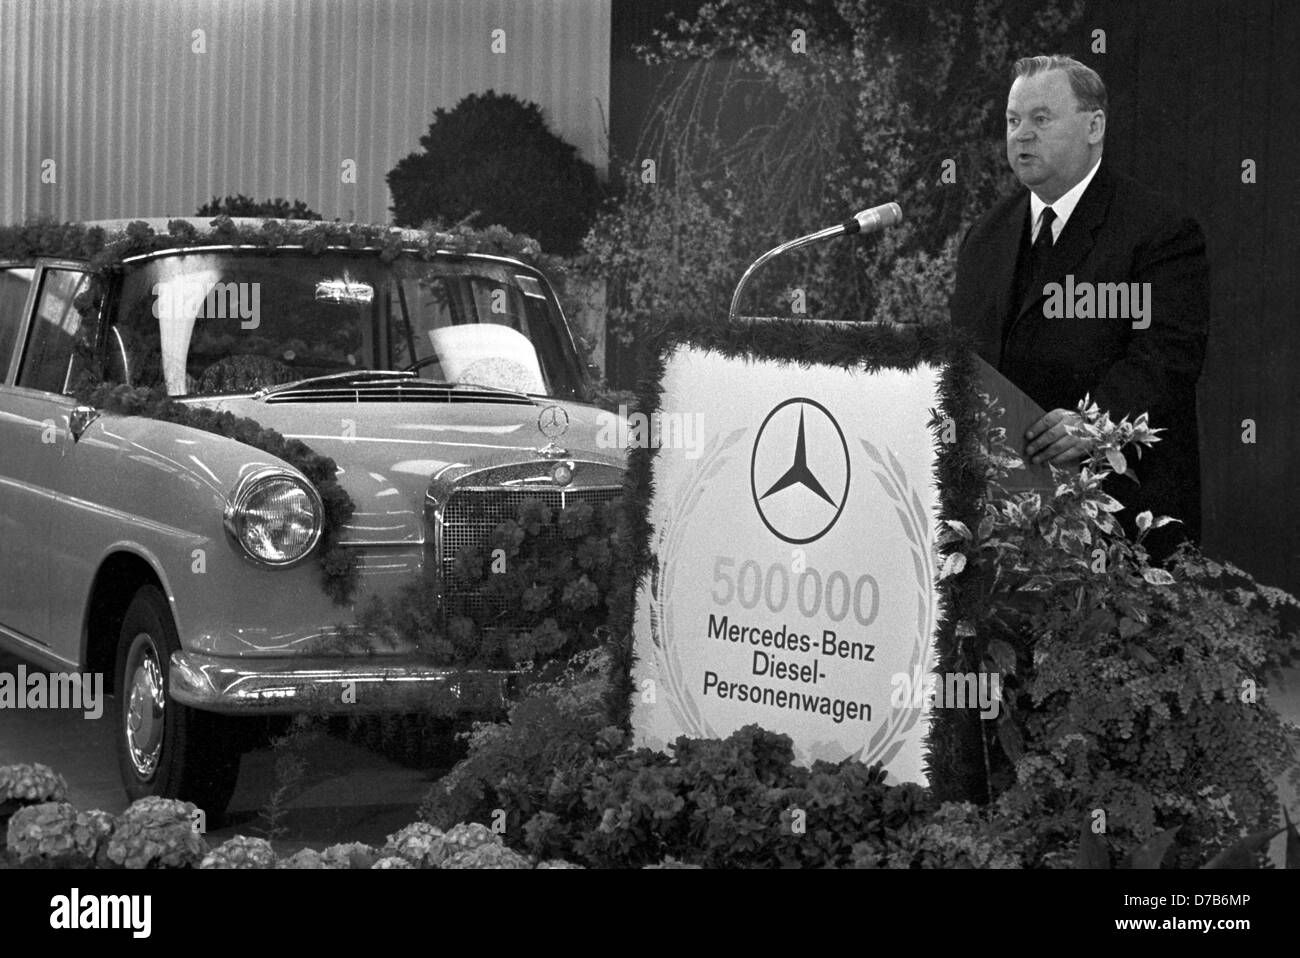 Daimler-Benz general director Walter Hitzinger is giving a speech on the 500,000th Mercedes-Benz Diesel car, on 8 April 1965, in Sindelfingen. On the left, the anniversary wagon from the assembly plant in Sindelfingen. Stock Photo